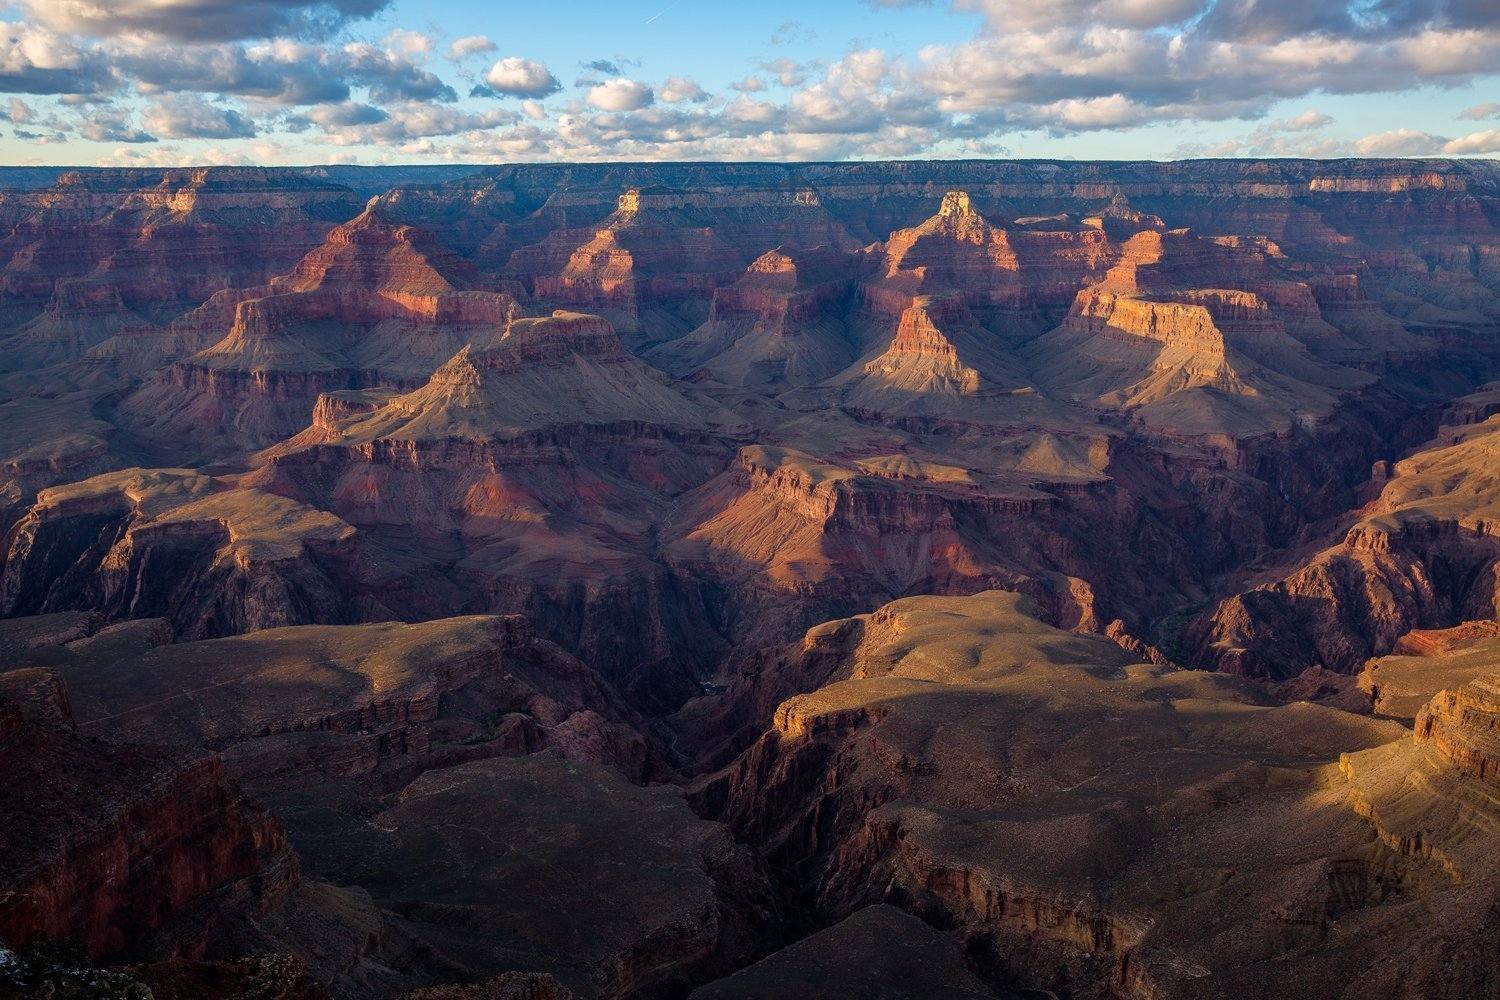 Grand Canyon Photography Art Print - Landscape Picture of South Rim at Sunset Arizona National Parks Southwest Home Decor 5x7 to 30x45